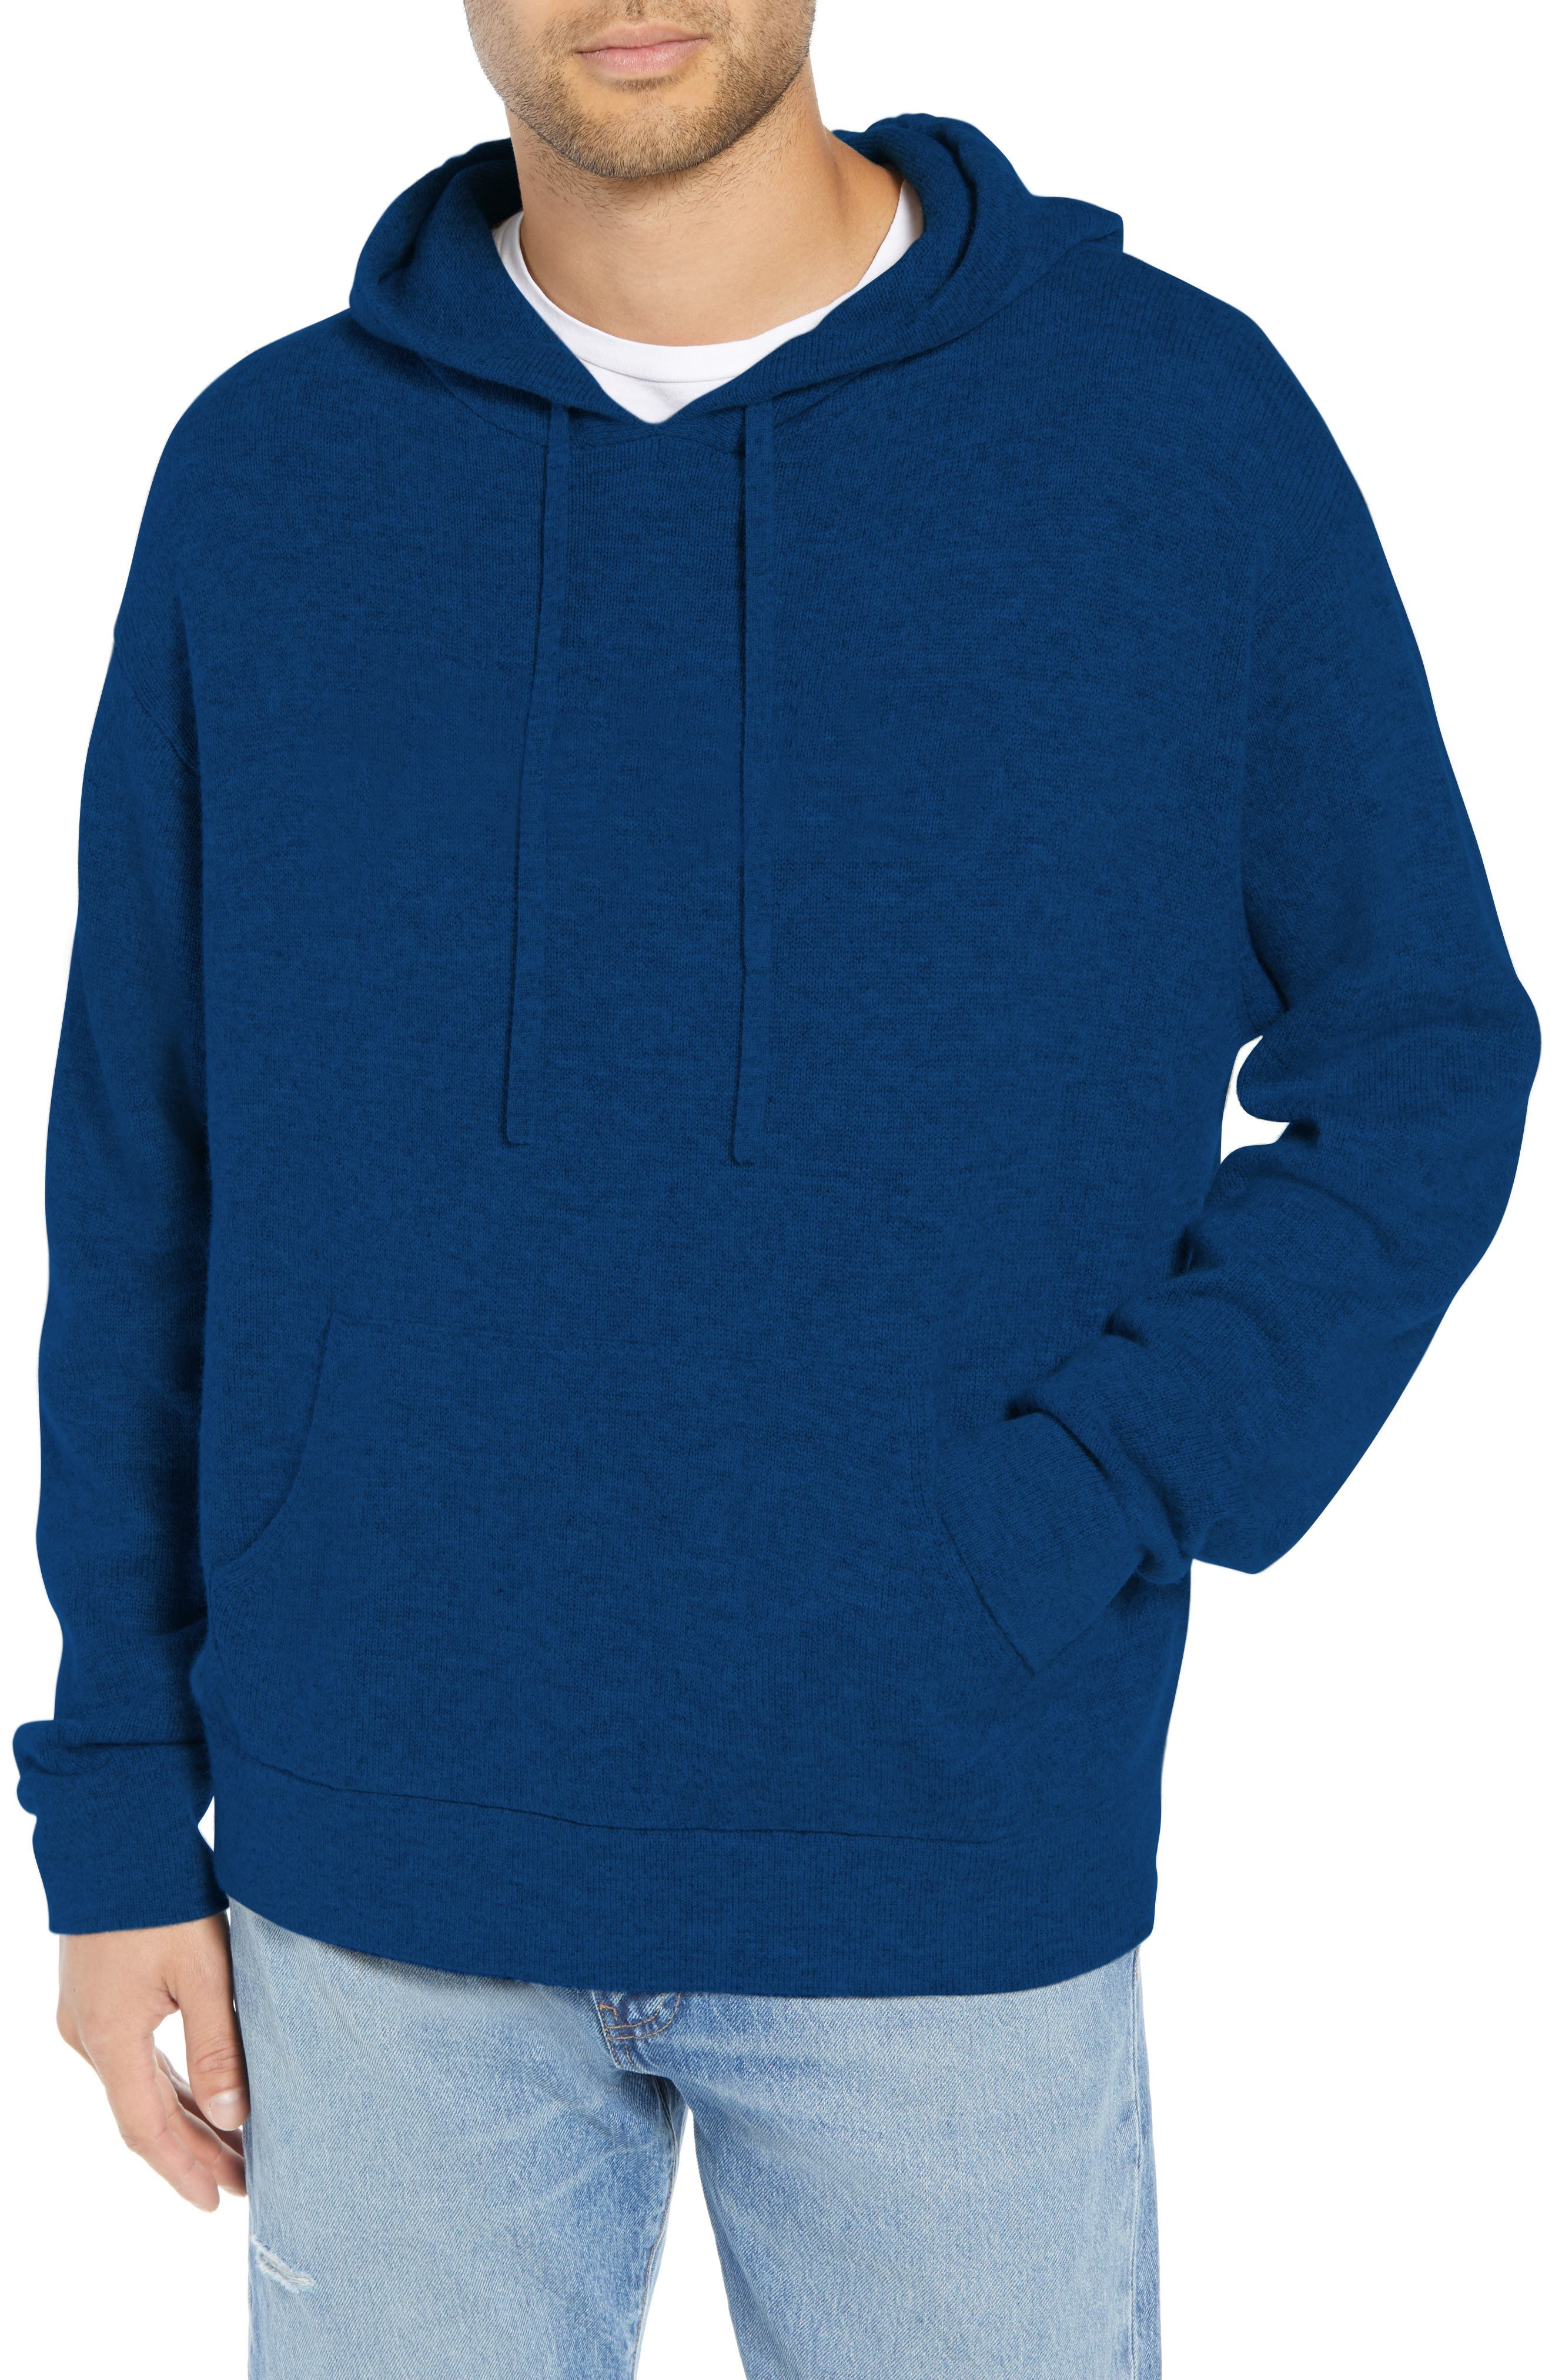 THE KOOPLES Classic Fit Hoodie Sweater in Navy